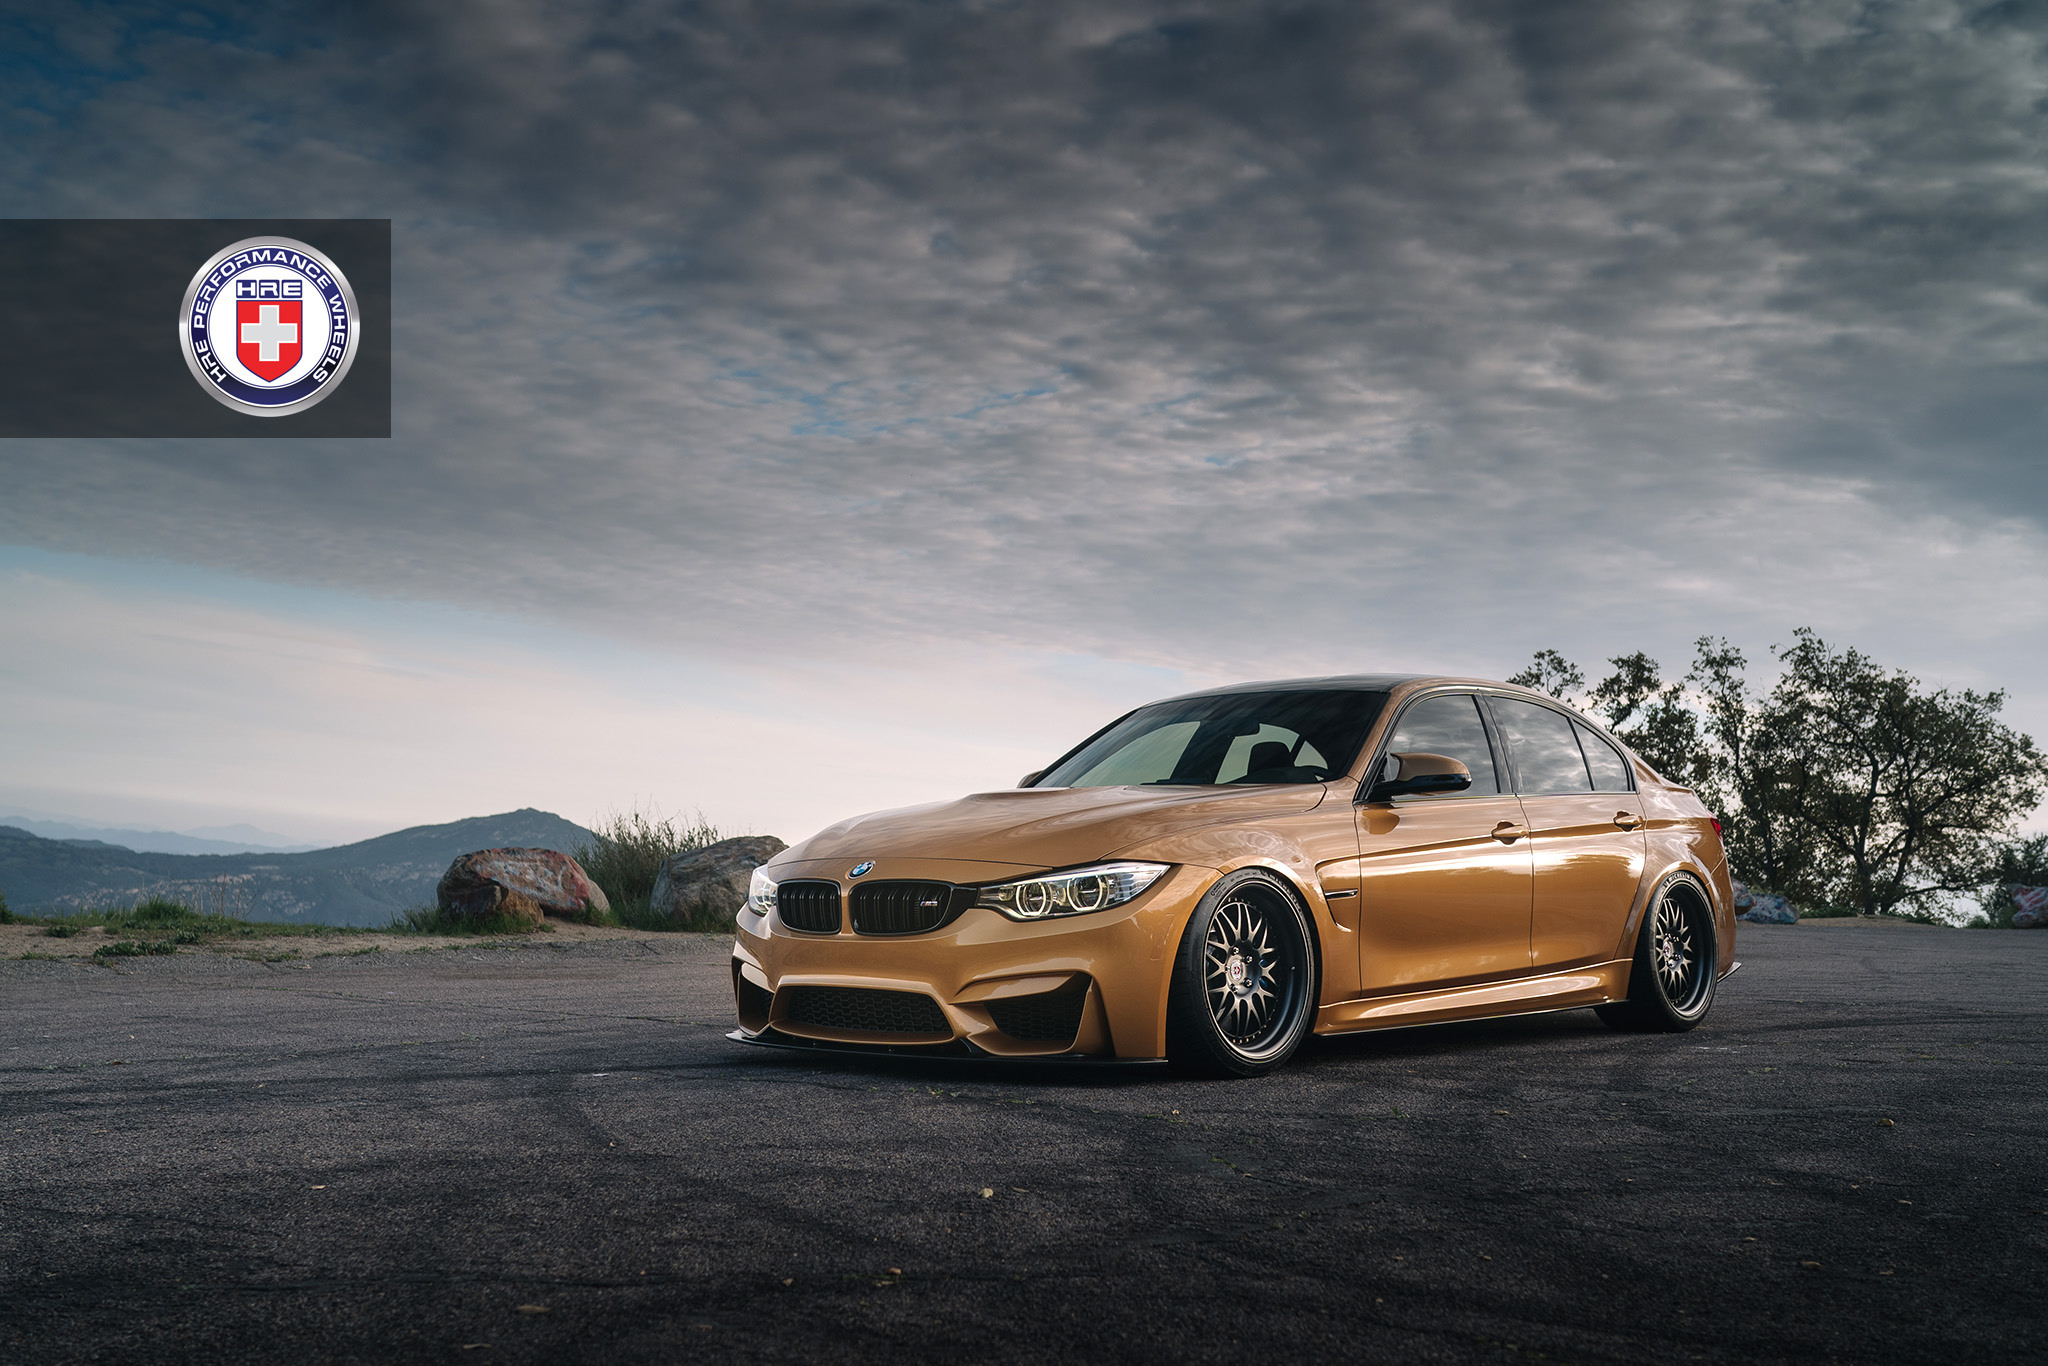 Sunburst Gold Metallic Bmw M3 With Hre 540 Wheels In Satin Black